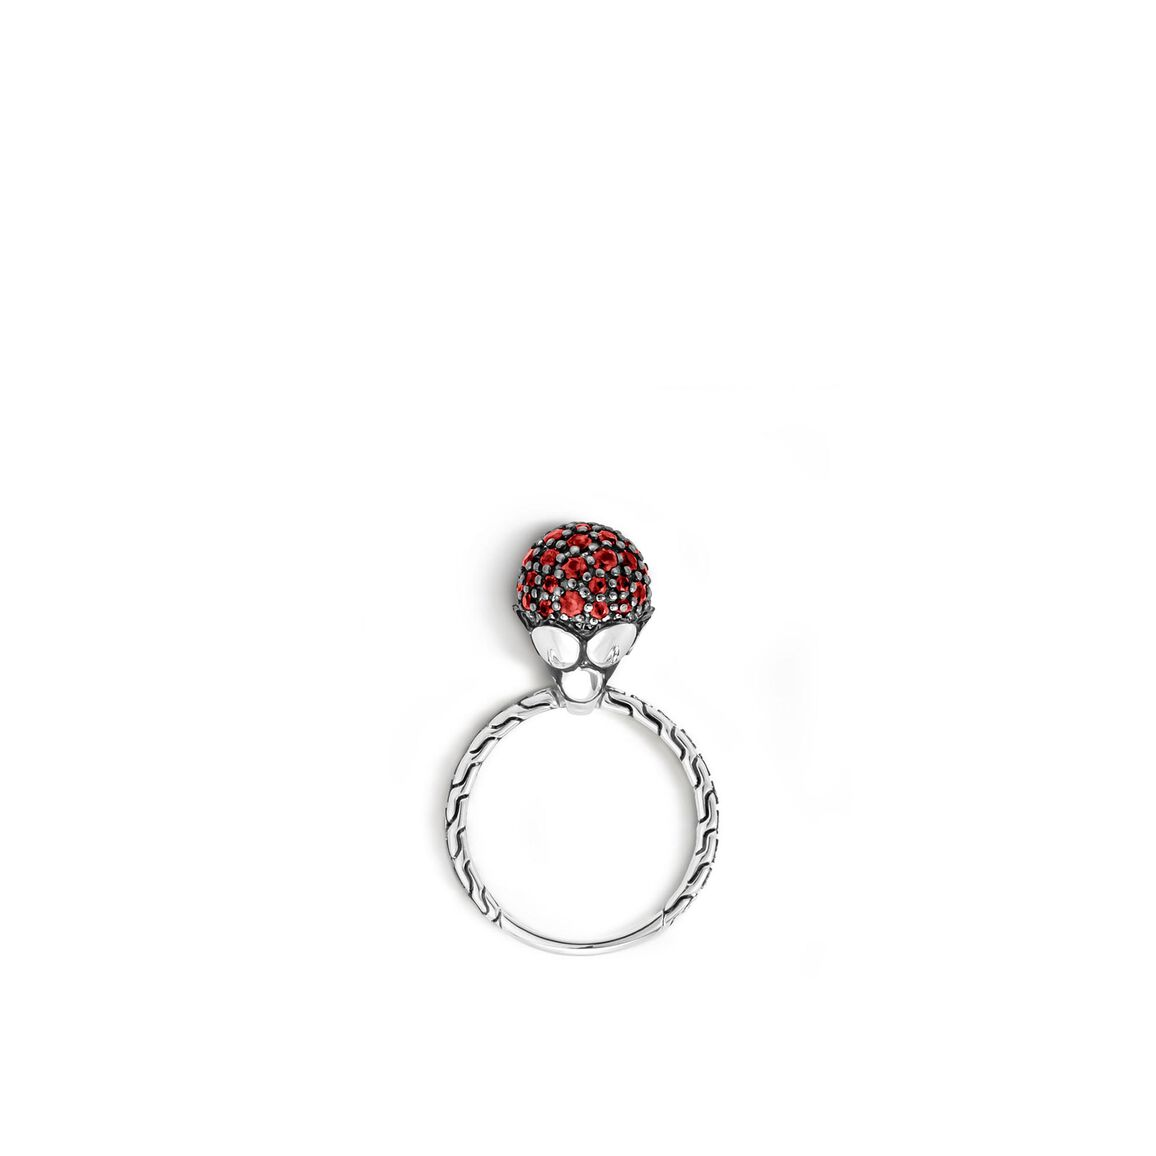 Dot Charm Ring in Silver with Gemstone